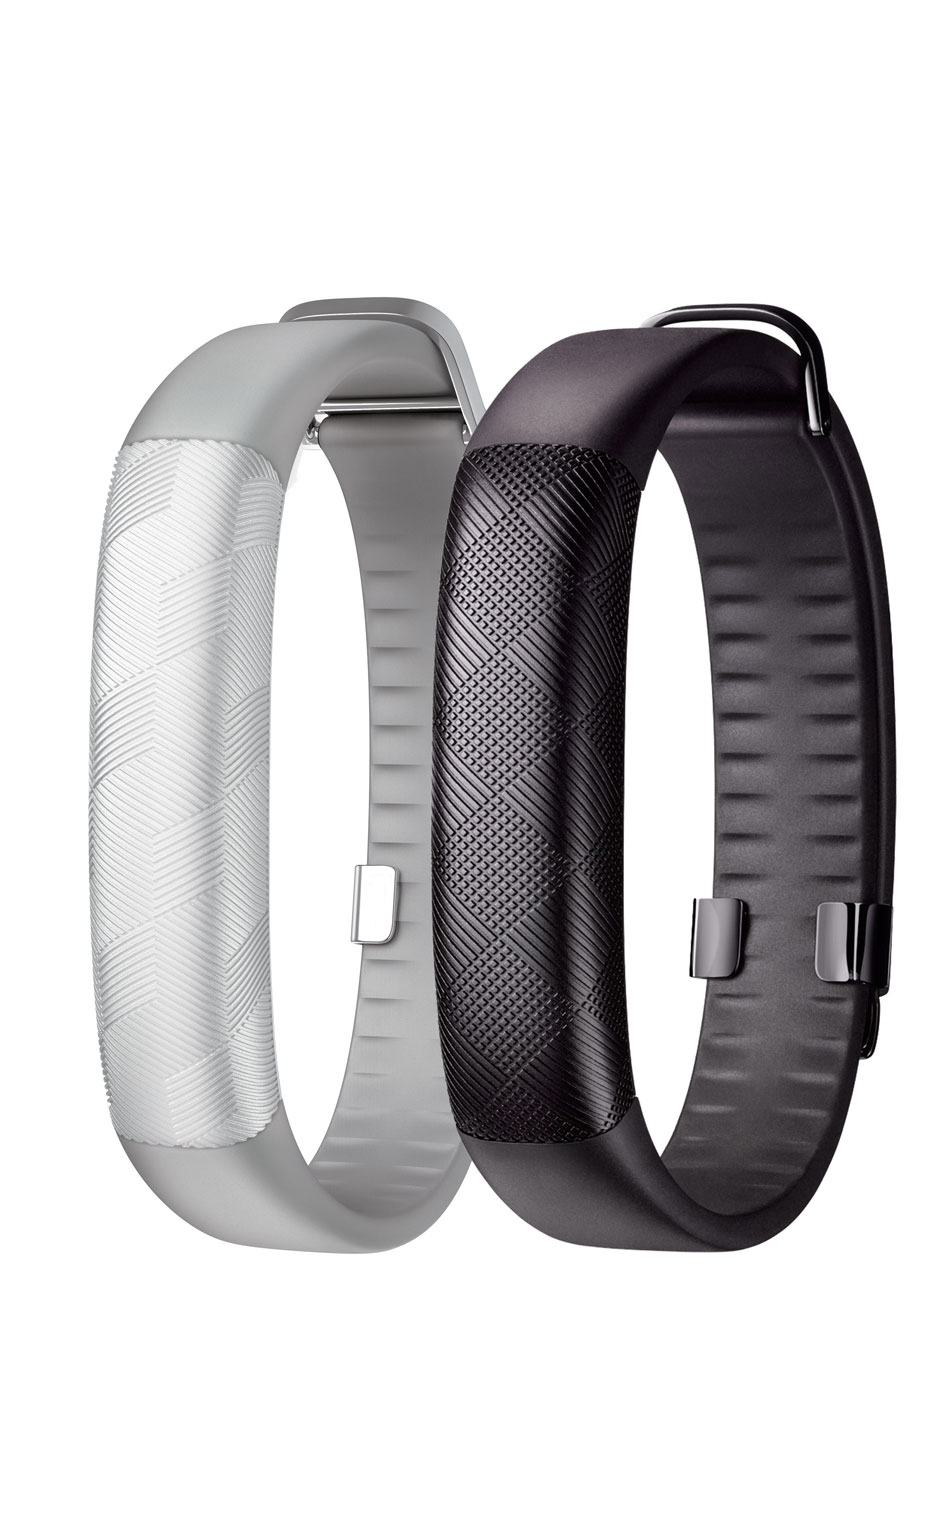 Jawbone Up Move Review - Activity Tracker Wear   Jawbone